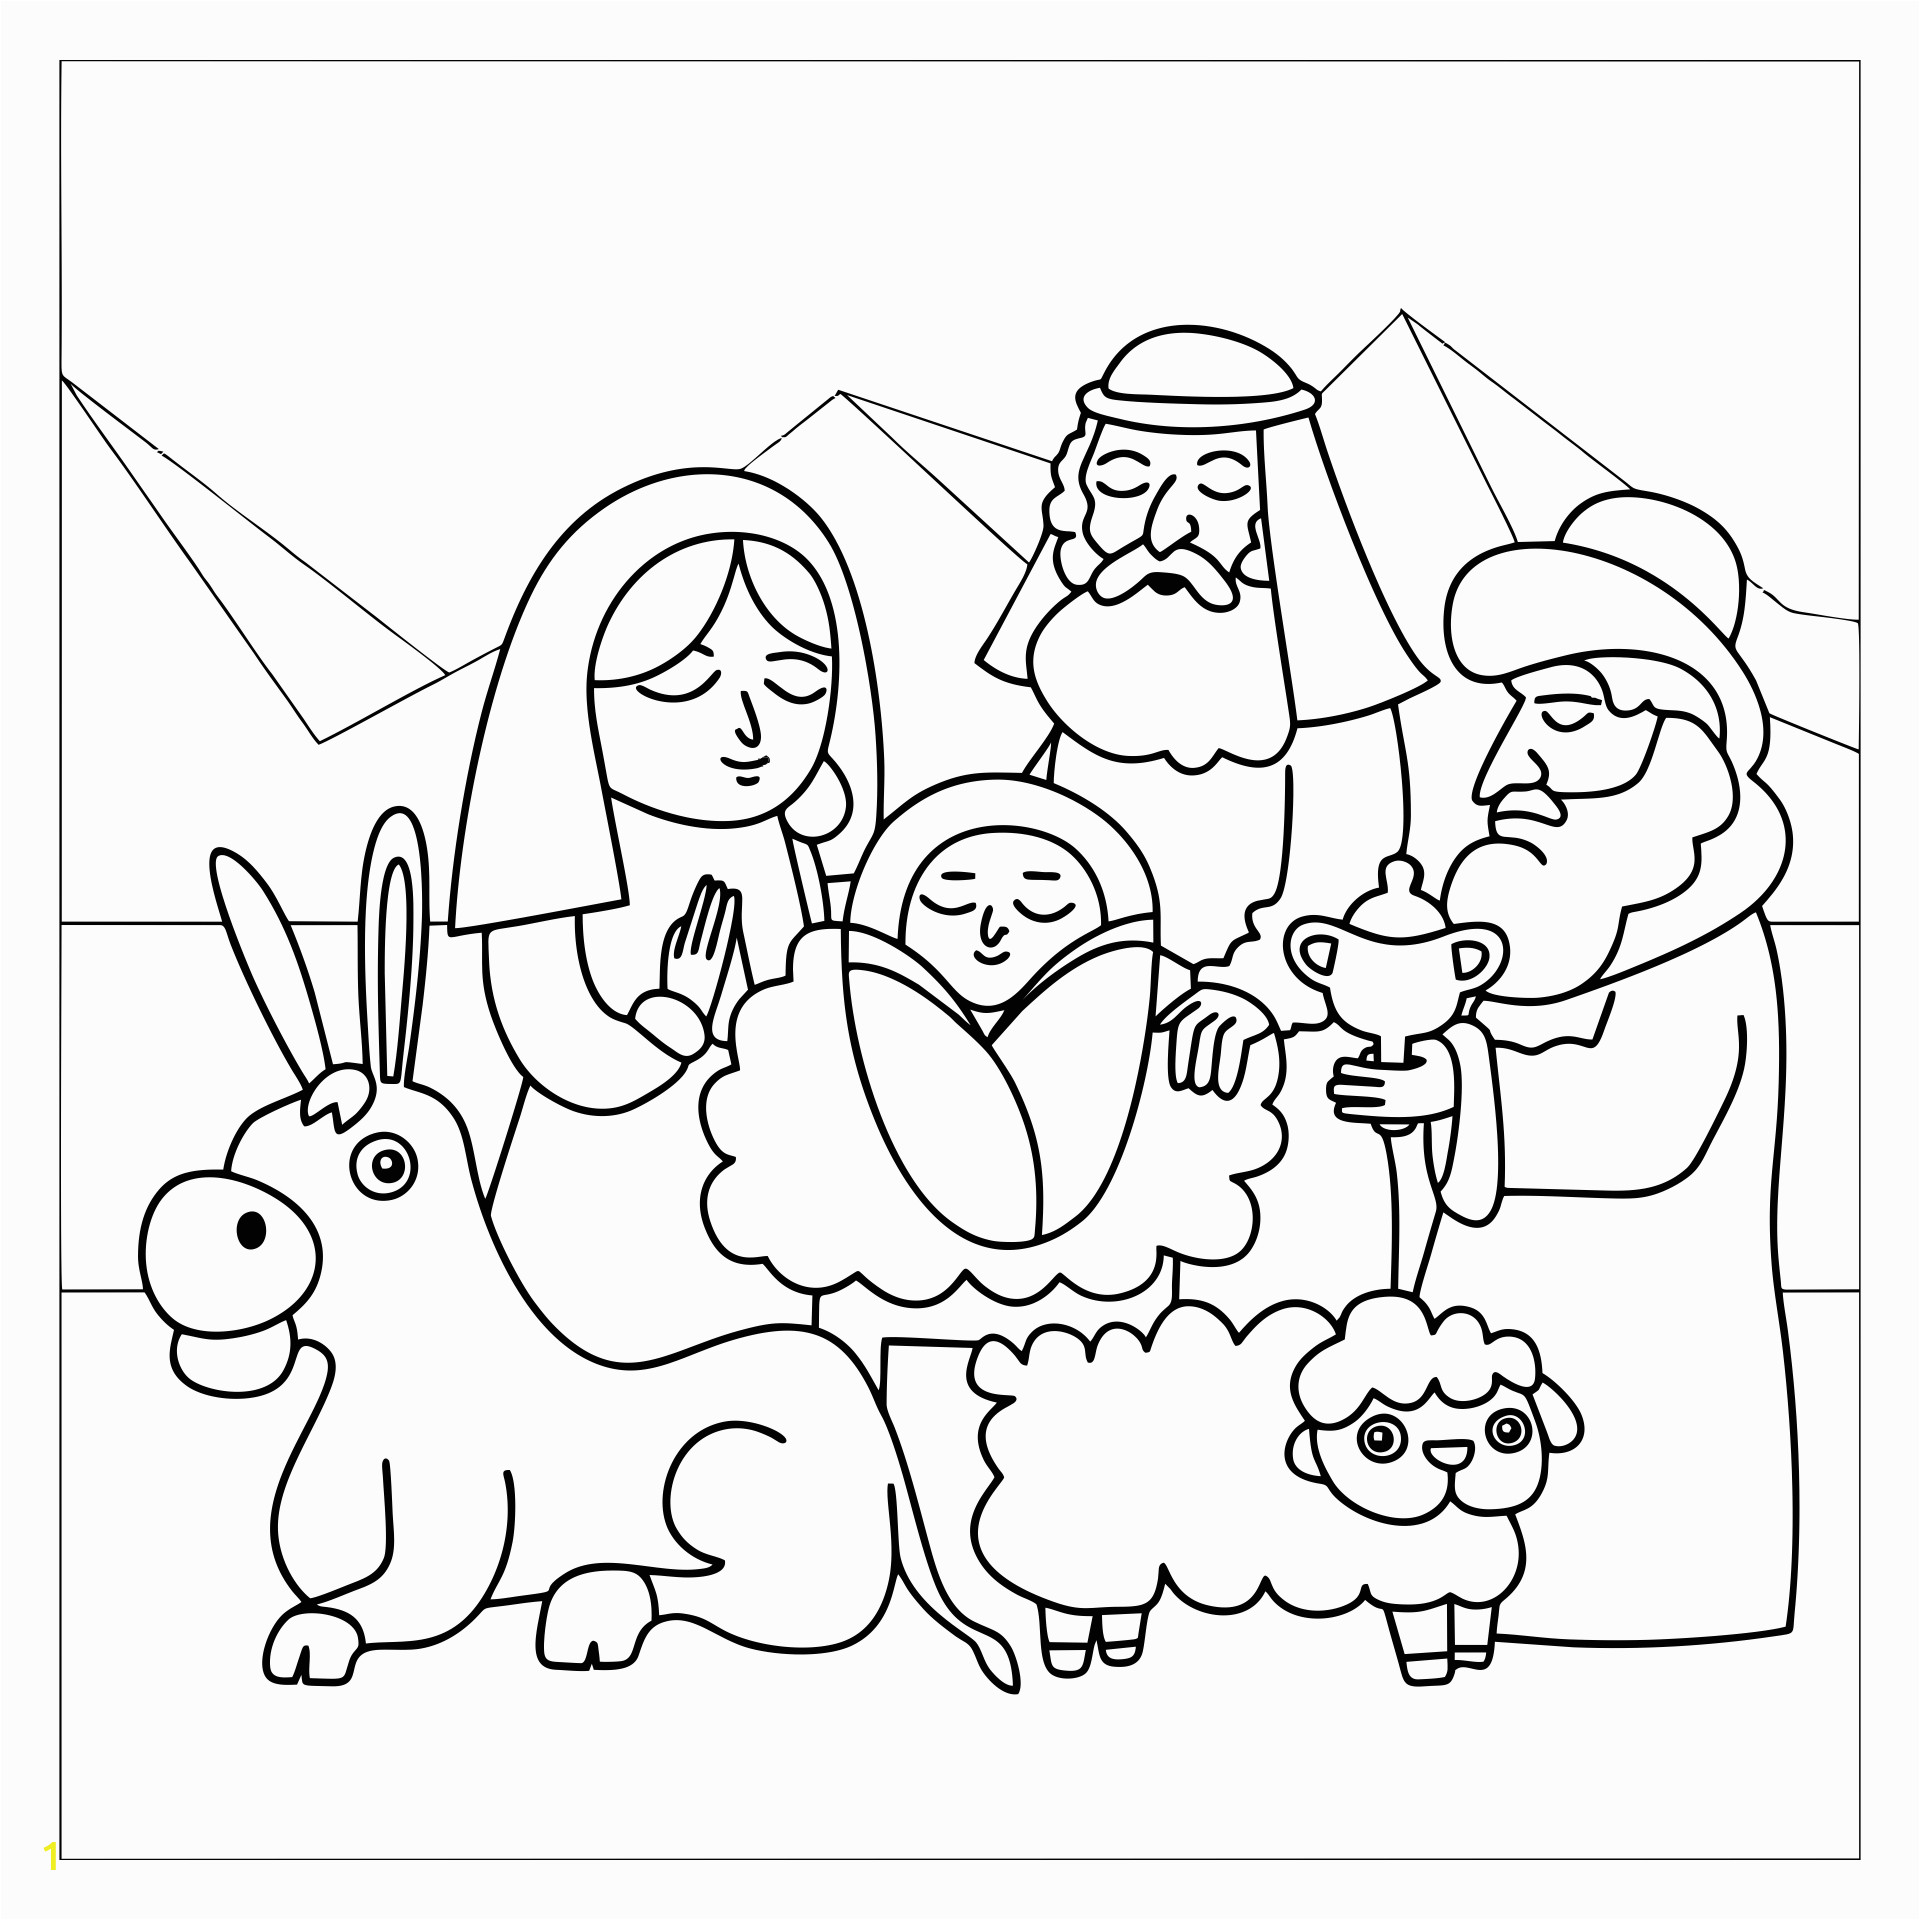 nativity characters coloring activities sketch templates